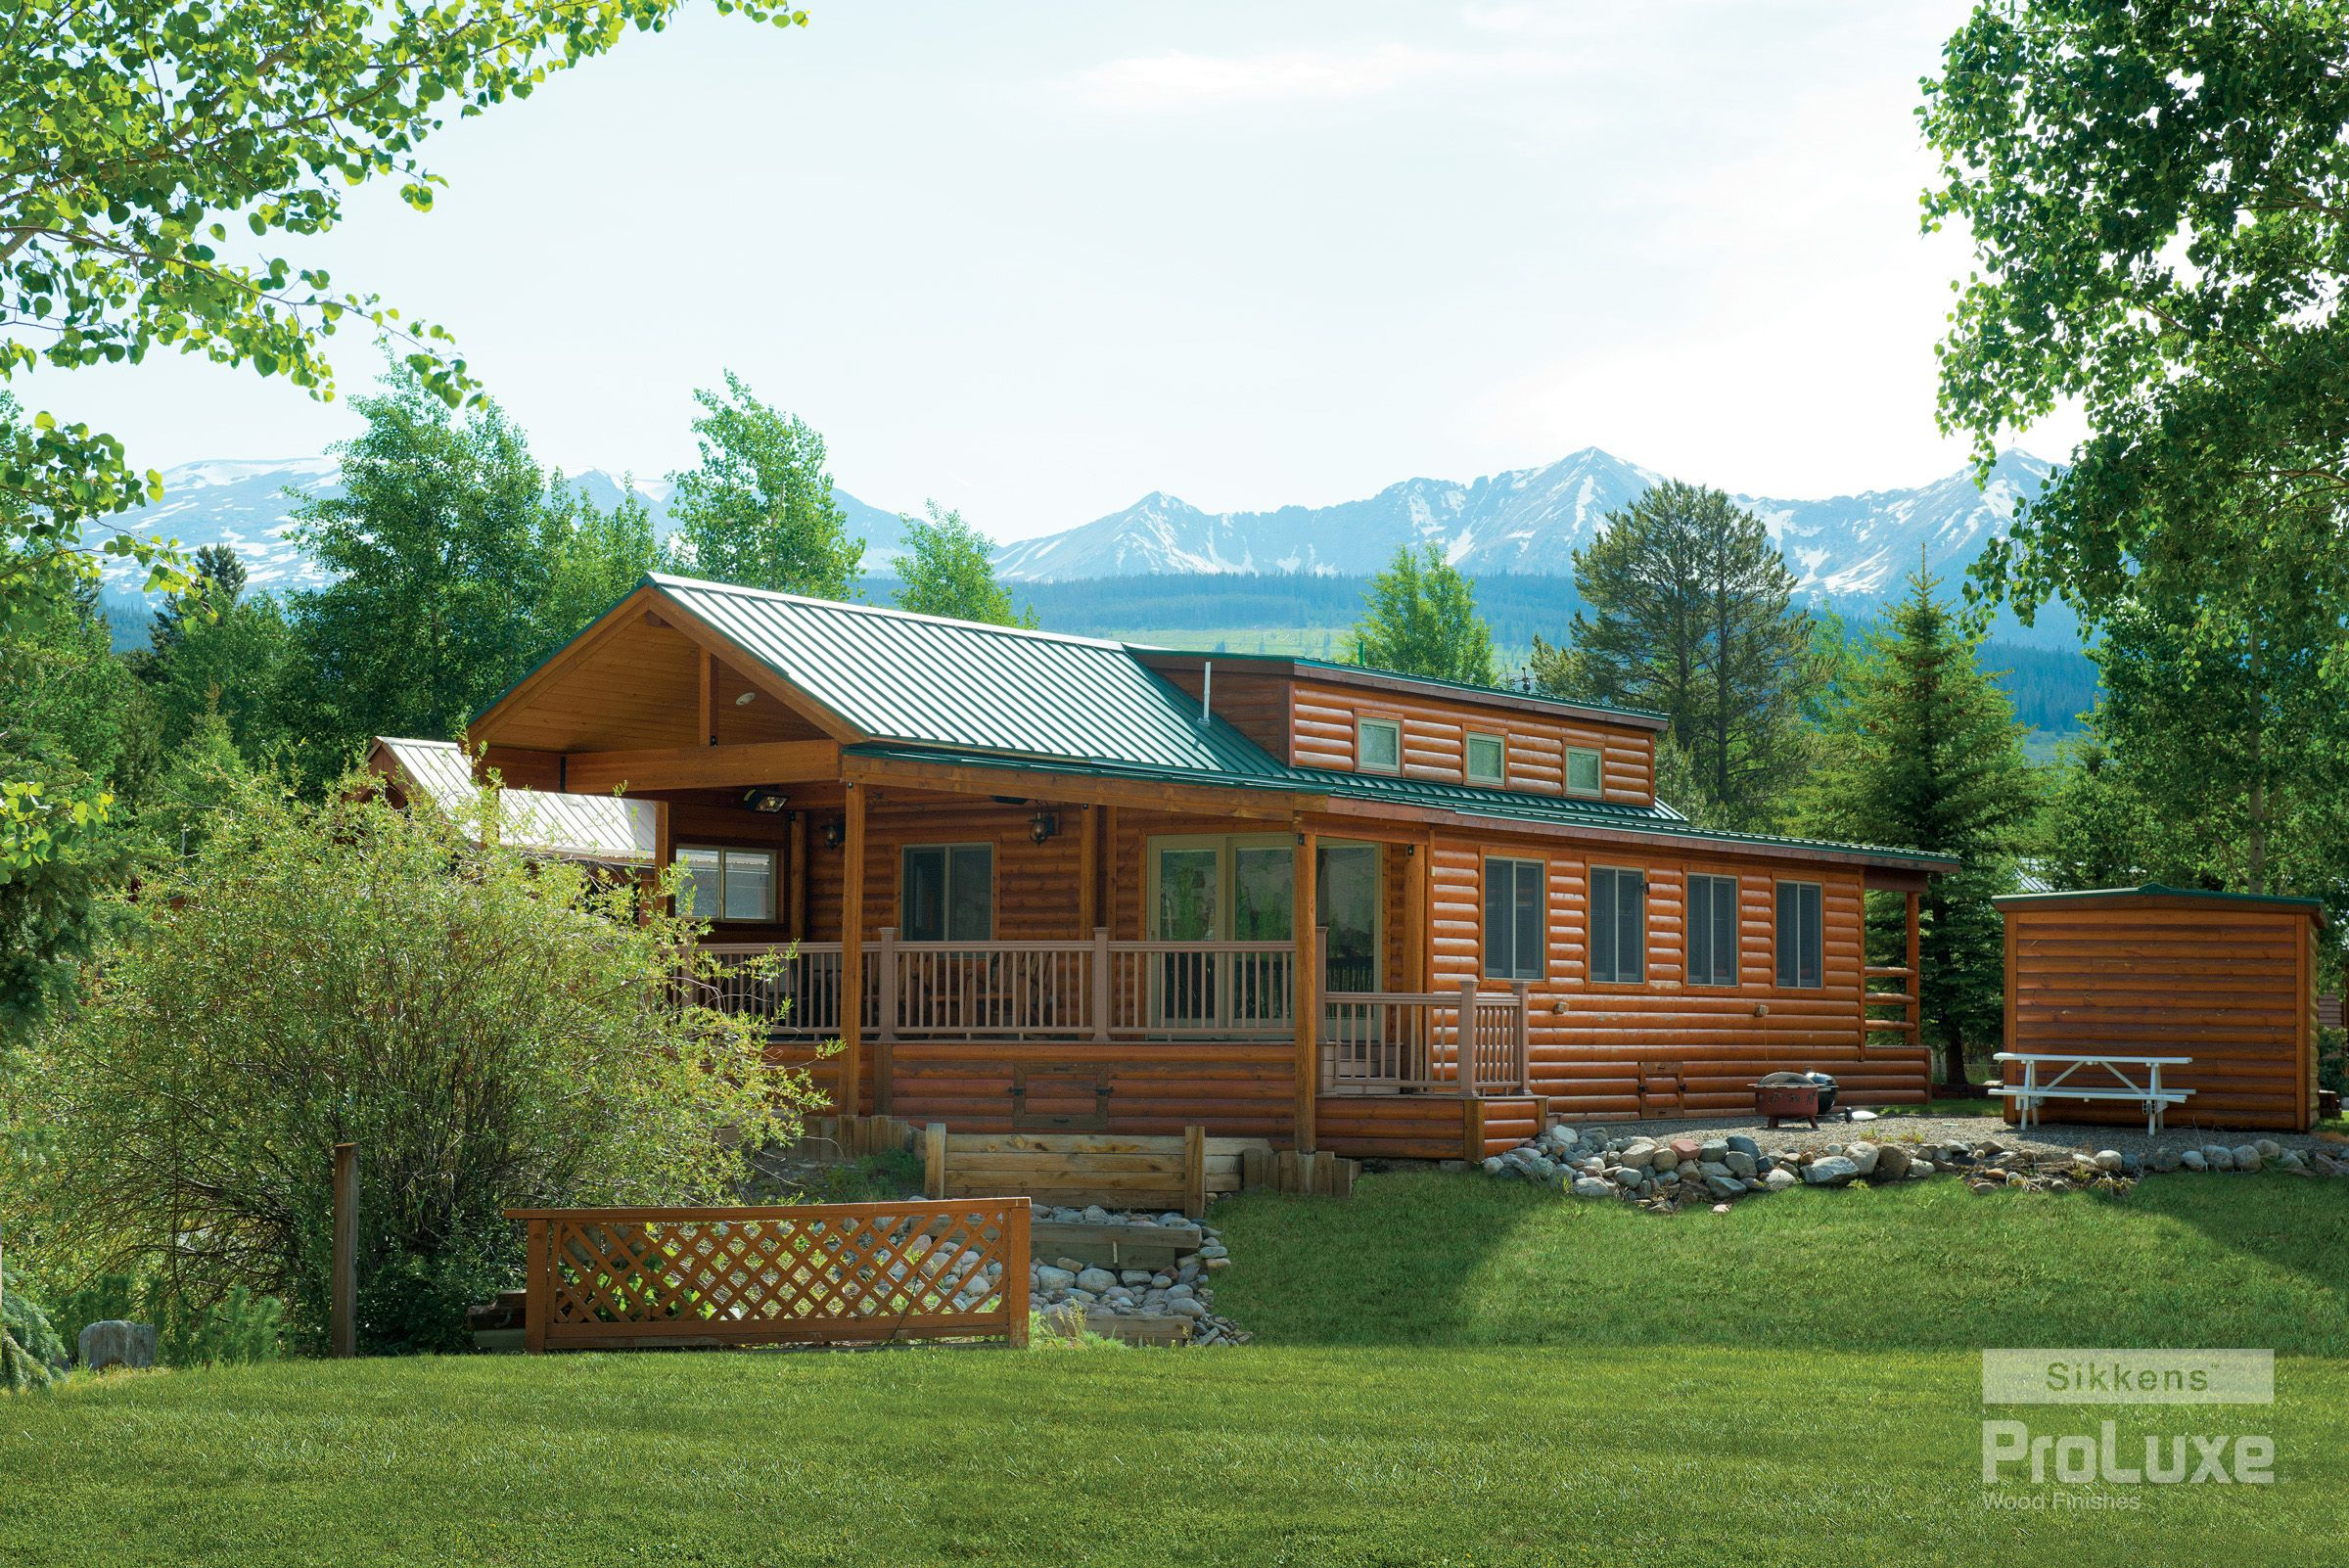 This rustic log cabin features sikkens proluxe cetol for How to stain log cabin